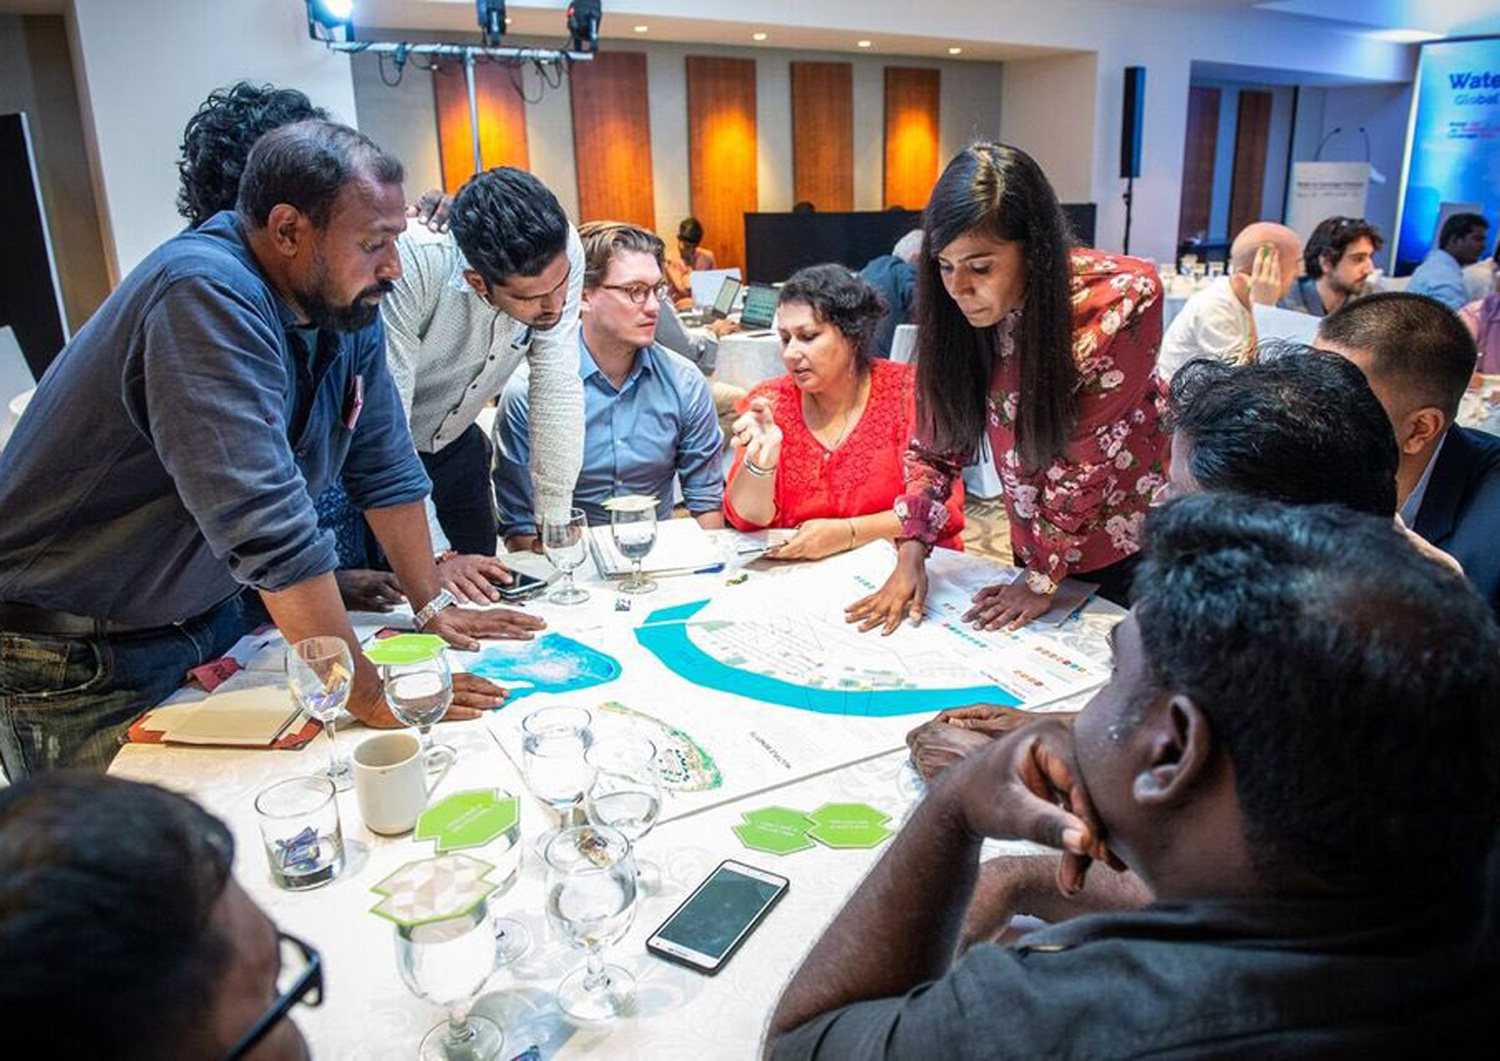 Nilofer Tajuddin from Ooze leads one of the workshops to present proposals for 4 sites across Chennai, and a regional strategy ©CynthiavanElk/WaterasLeverage